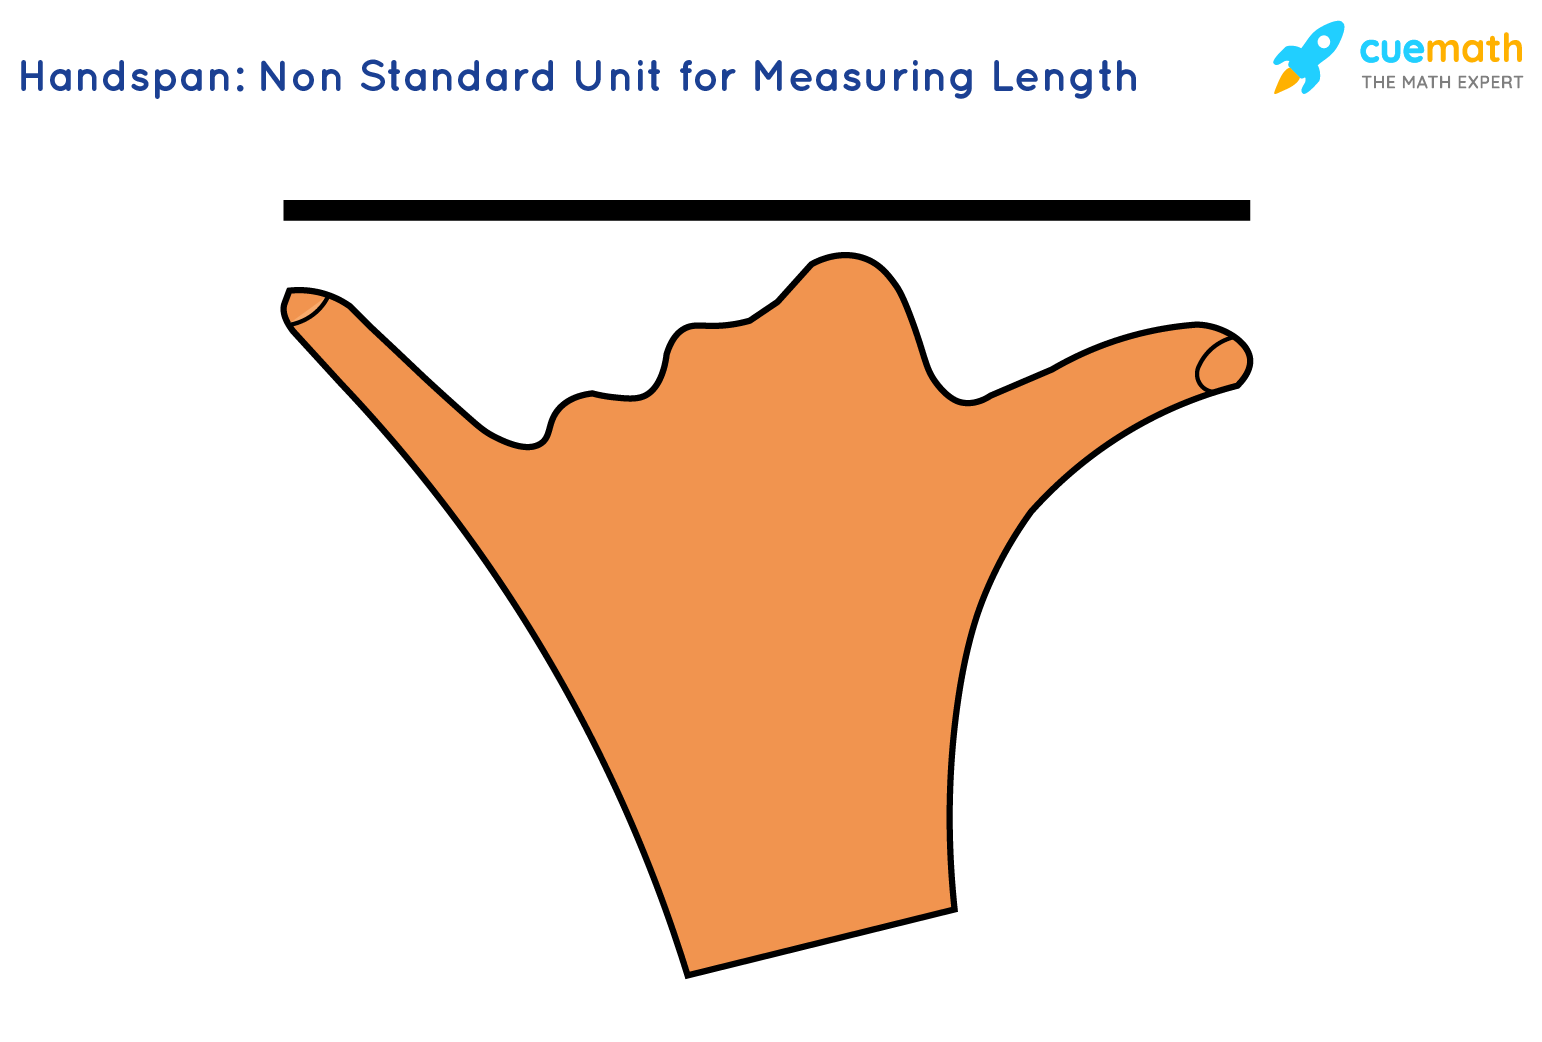 Handspan: A non standard unit for measuring length